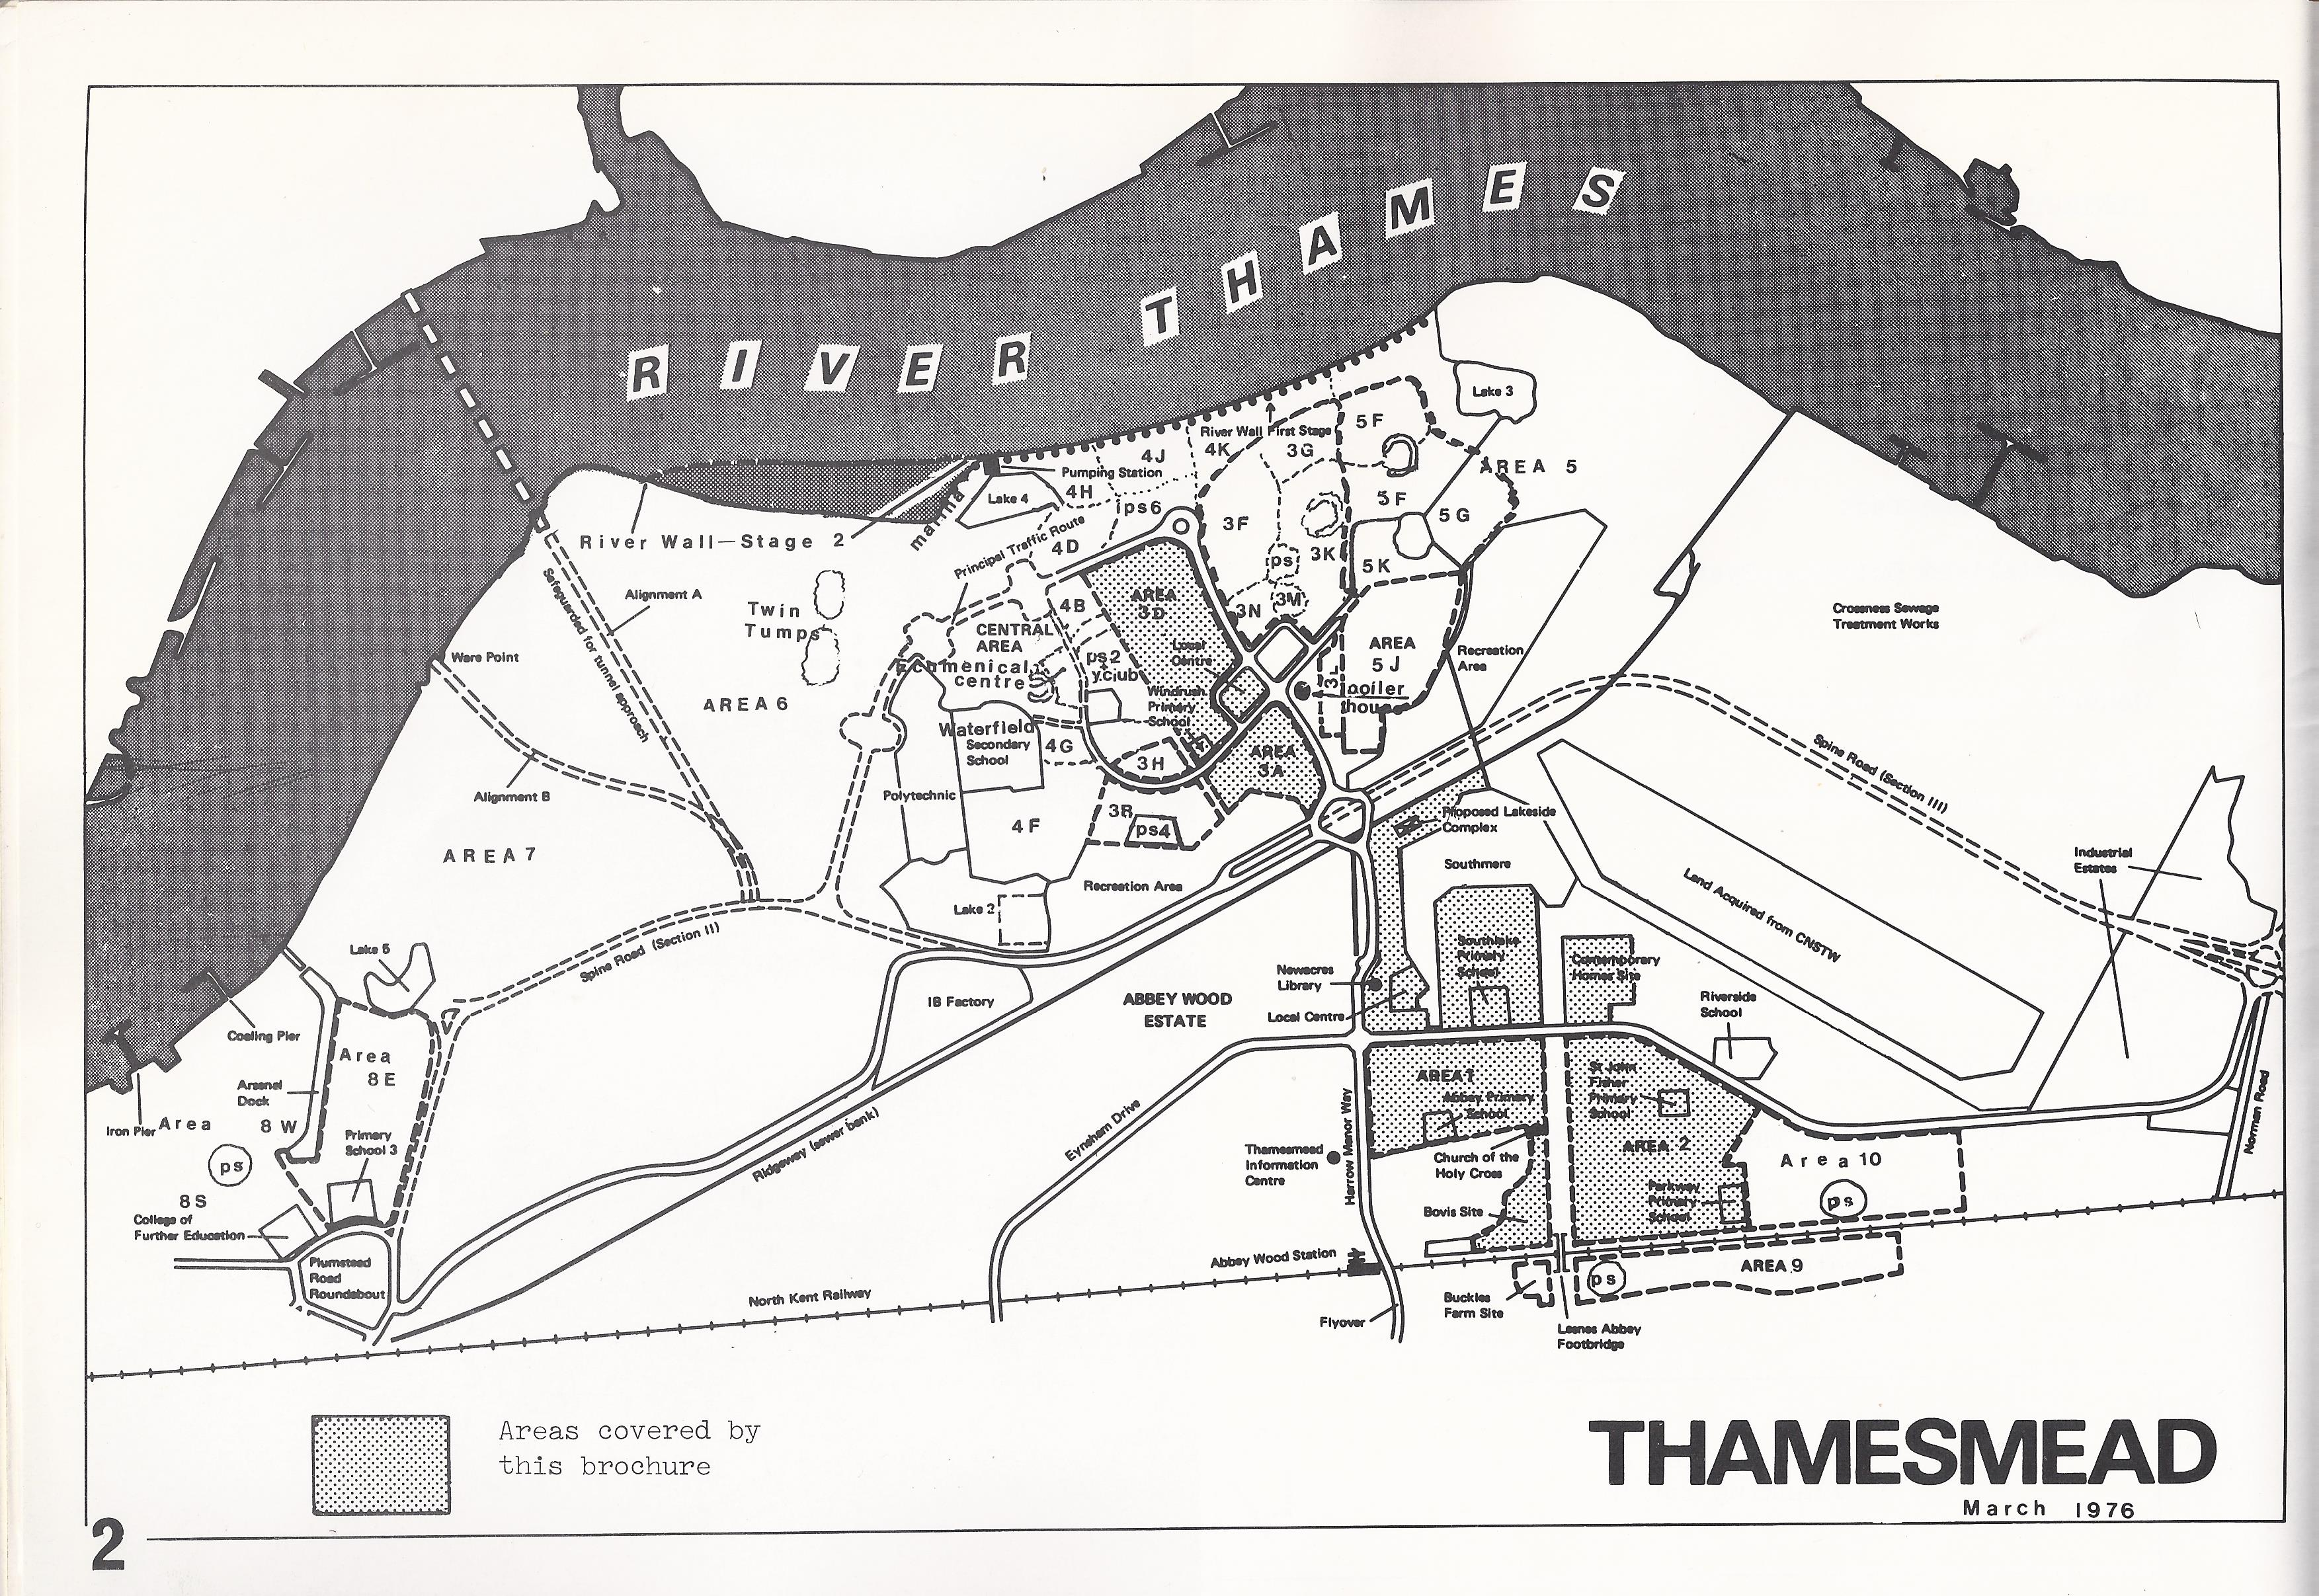 map of thamesmead area london